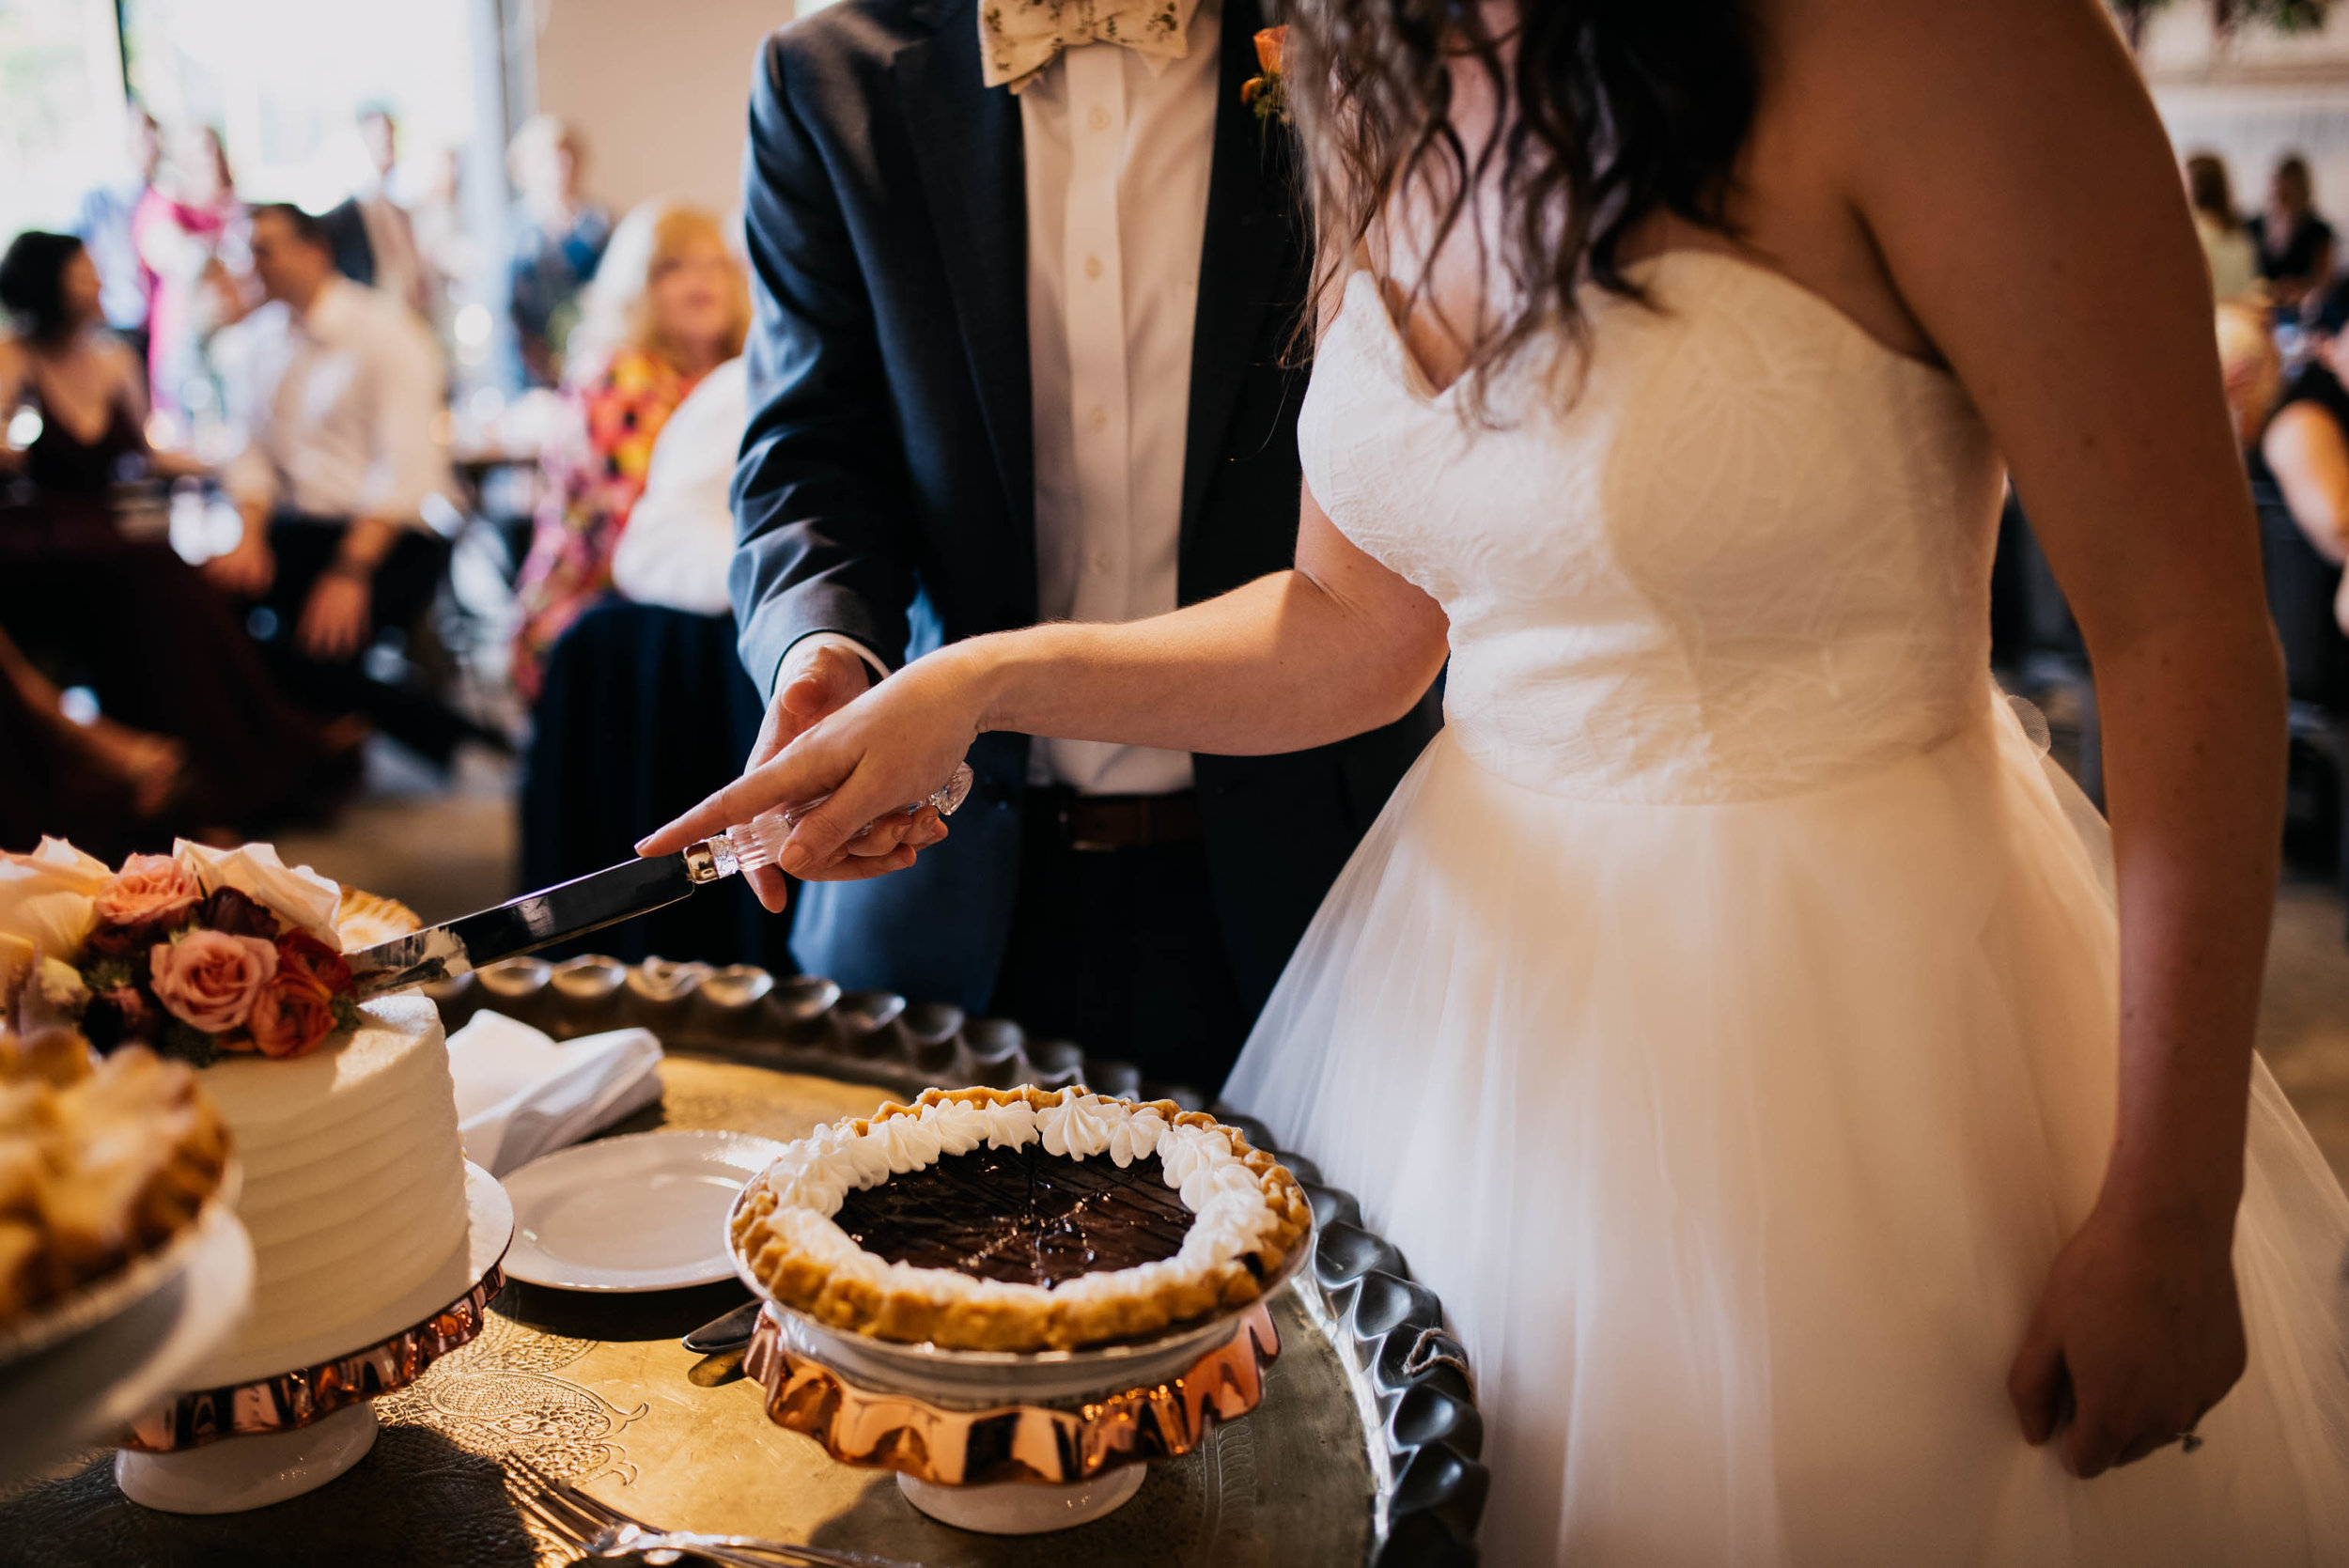 bride and groom cut the cake during their wedding reception